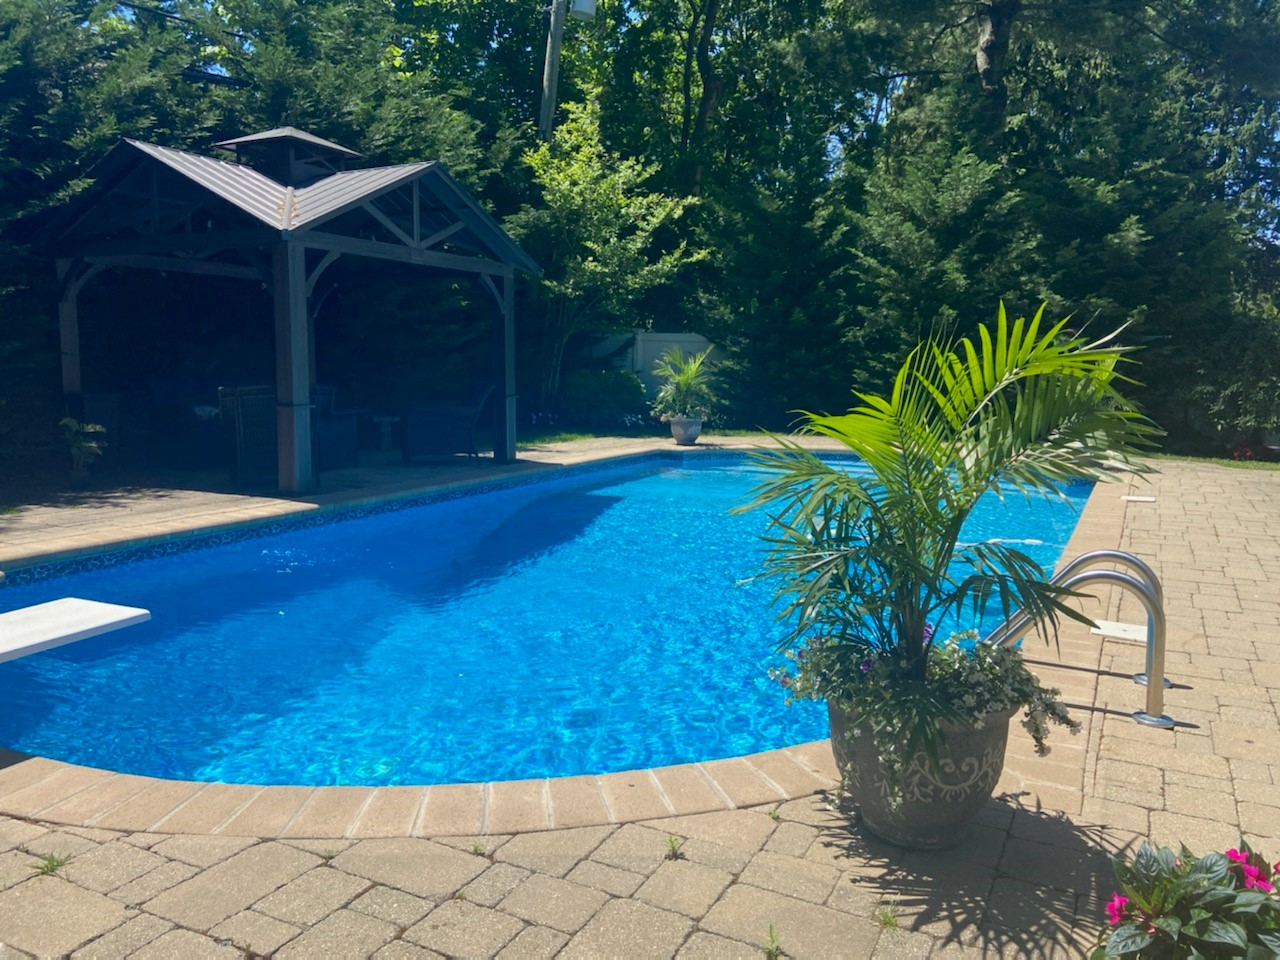 Single Family Homes for Sale at 42 Circle Drive, Glen Cove, NY 11542 42 Circle Drive Glen Cove, New York 11542 United States